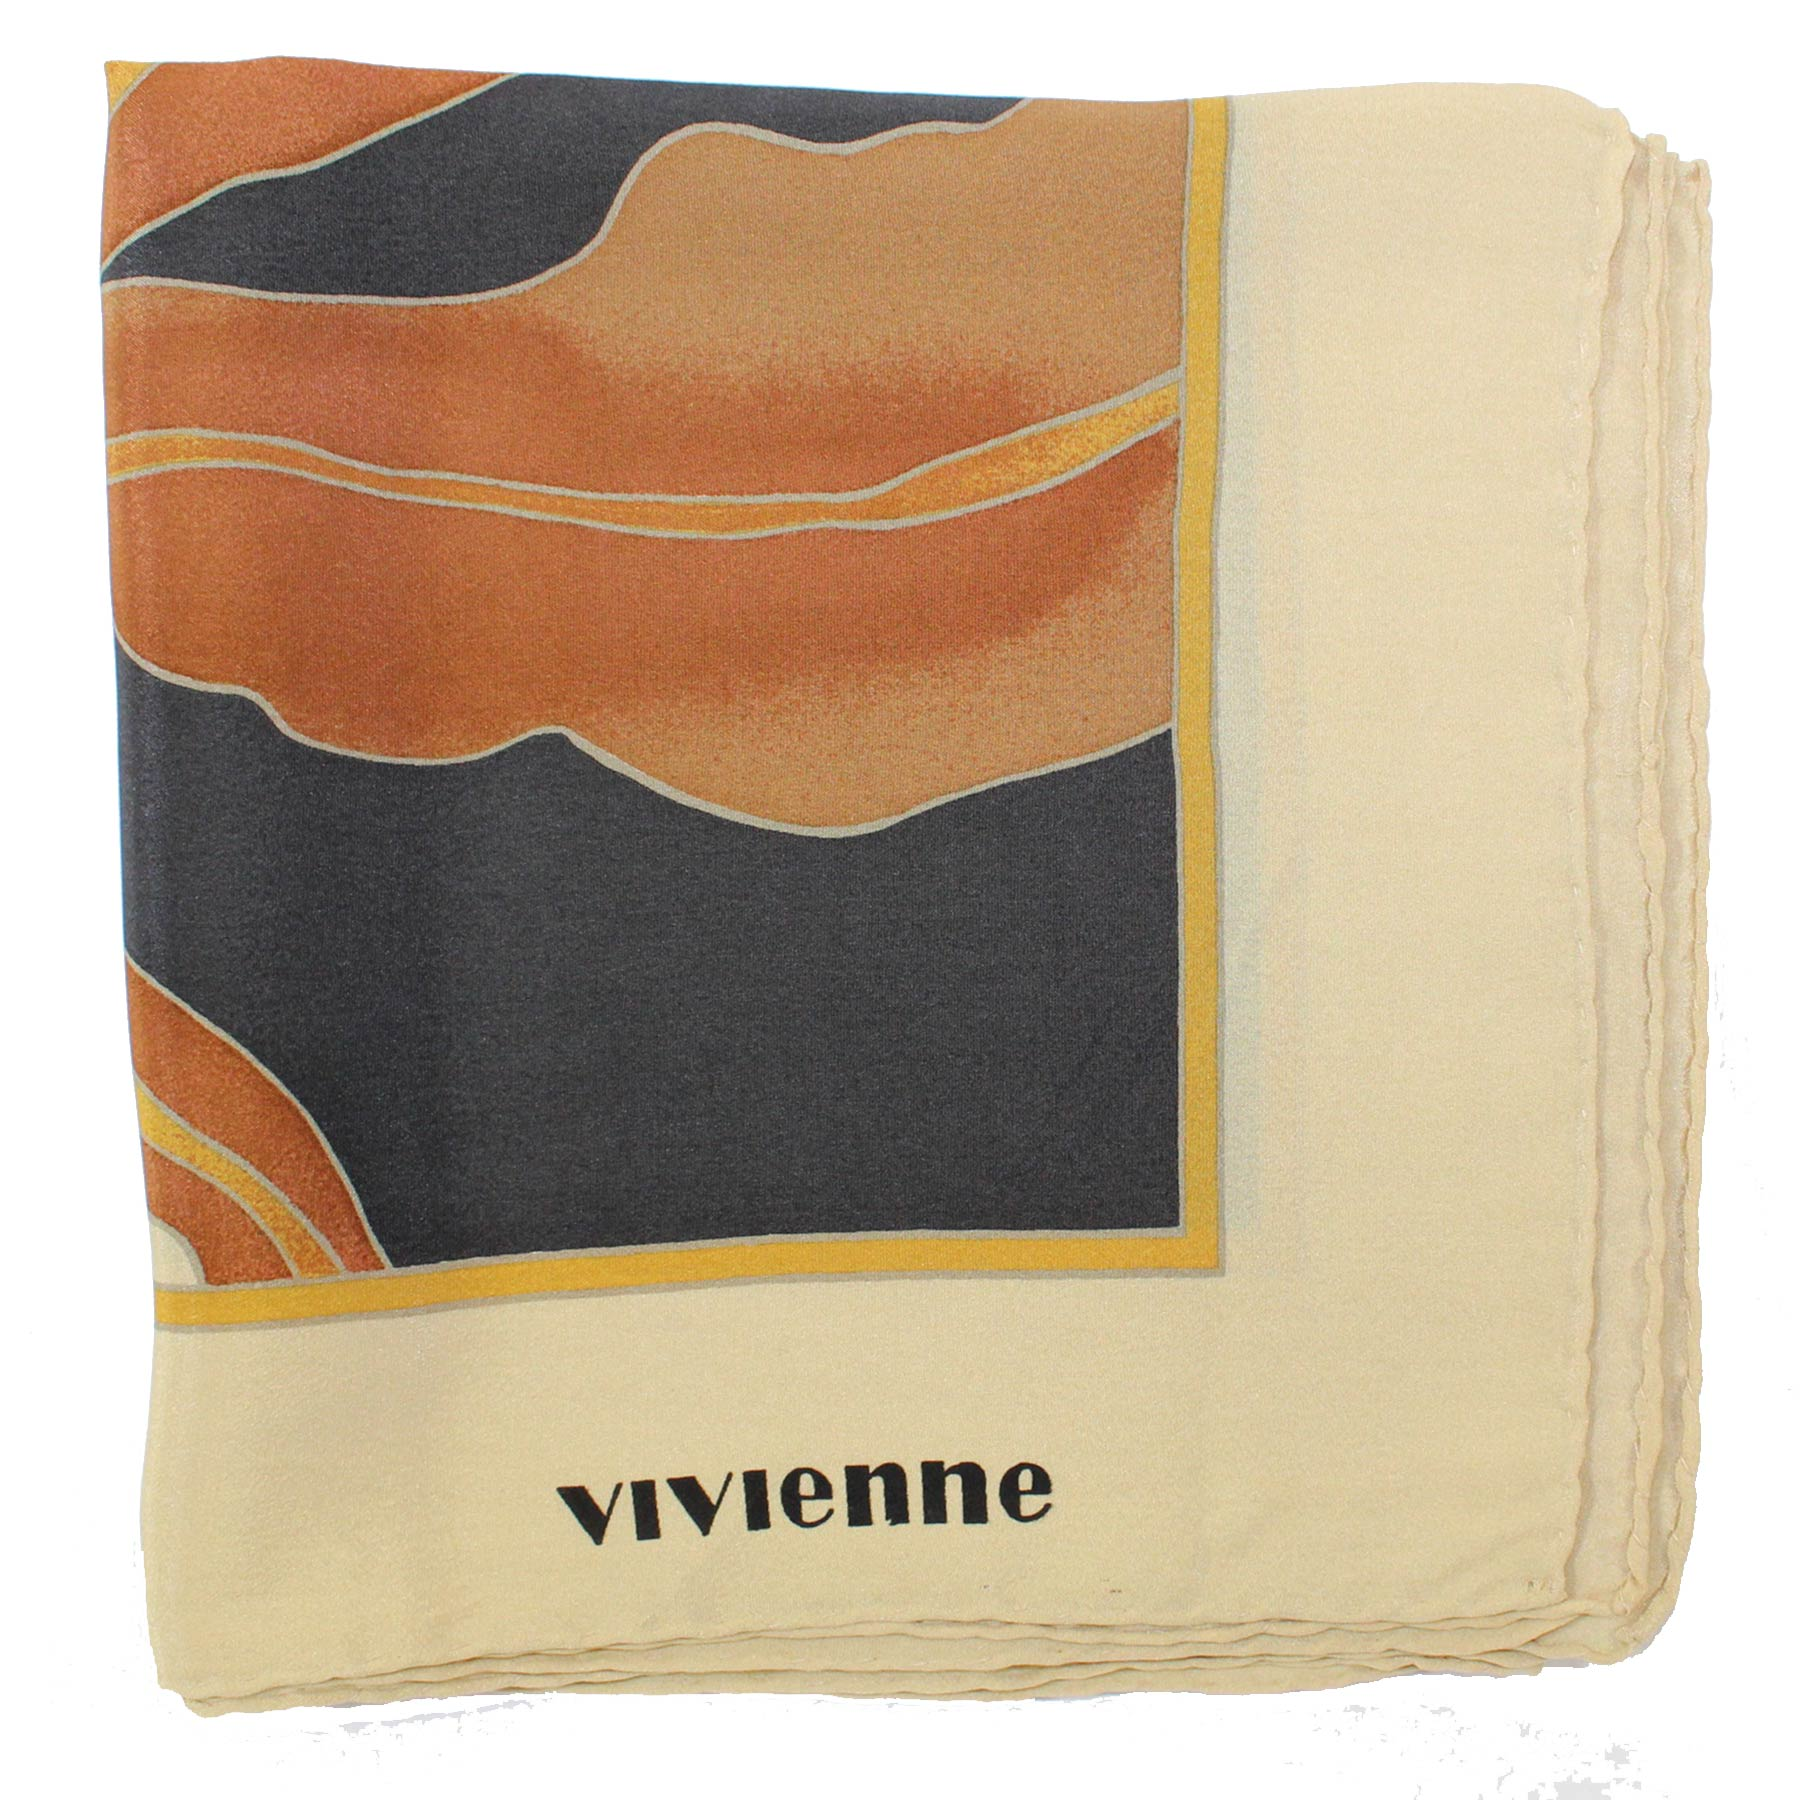 Vivienne Glamour Scarf Brown Design - Large Silk Square Scarf Vintage SALE